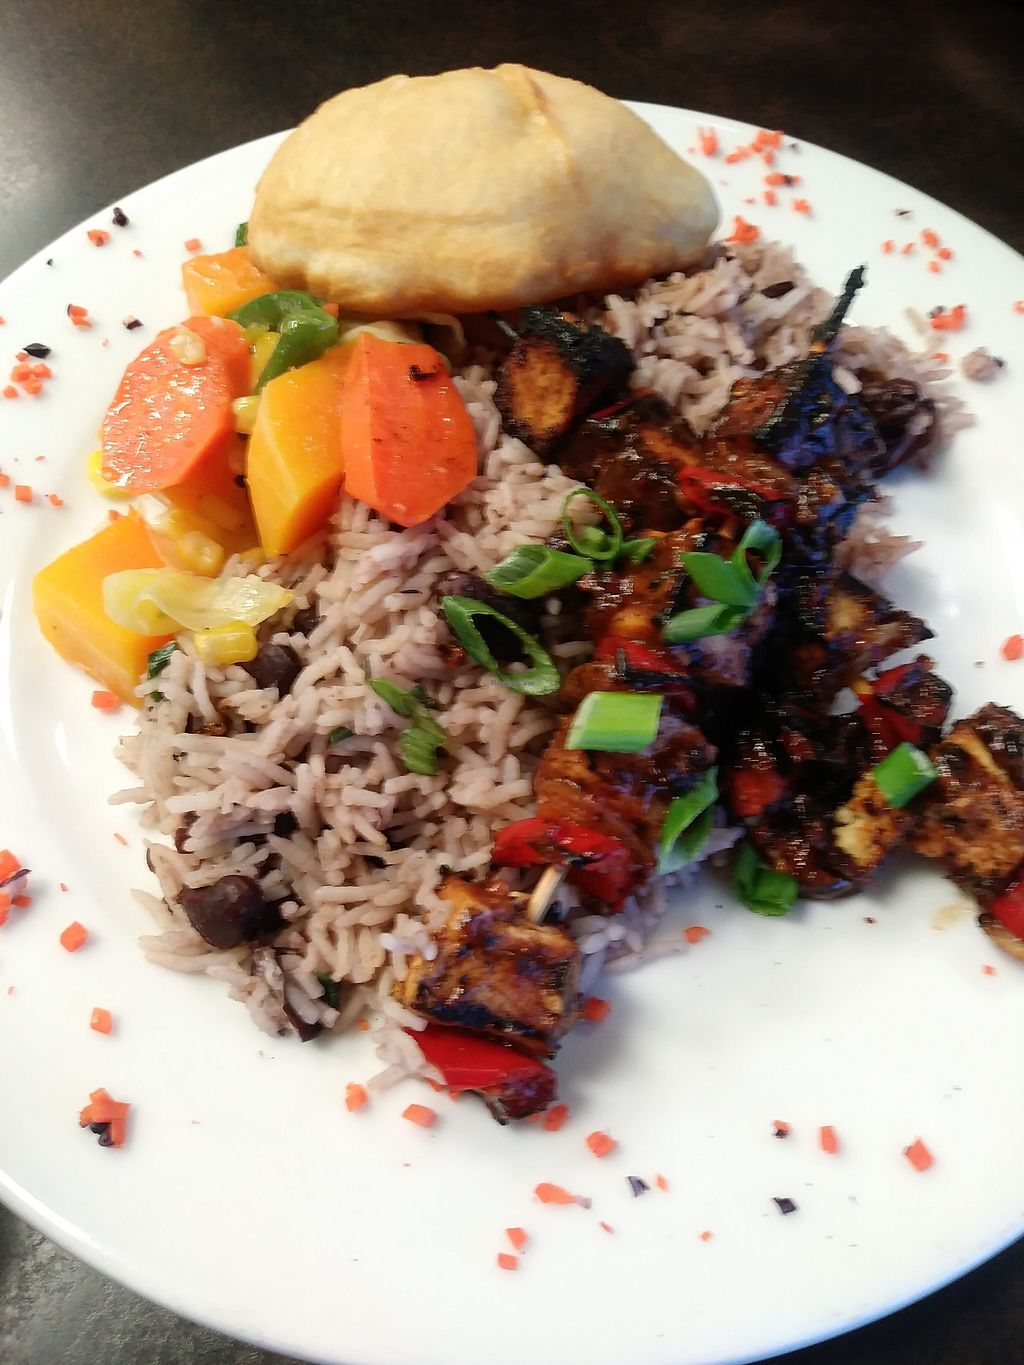 """Photo of Jamaican Kitchen  by <a href=""""/members/profile/LolaMeow"""">LolaMeow</a> <br/>Jerk Tofu Kabobs <br/> February 17, 2018  - <a href='/contact/abuse/image/112178/360189'>Report</a>"""